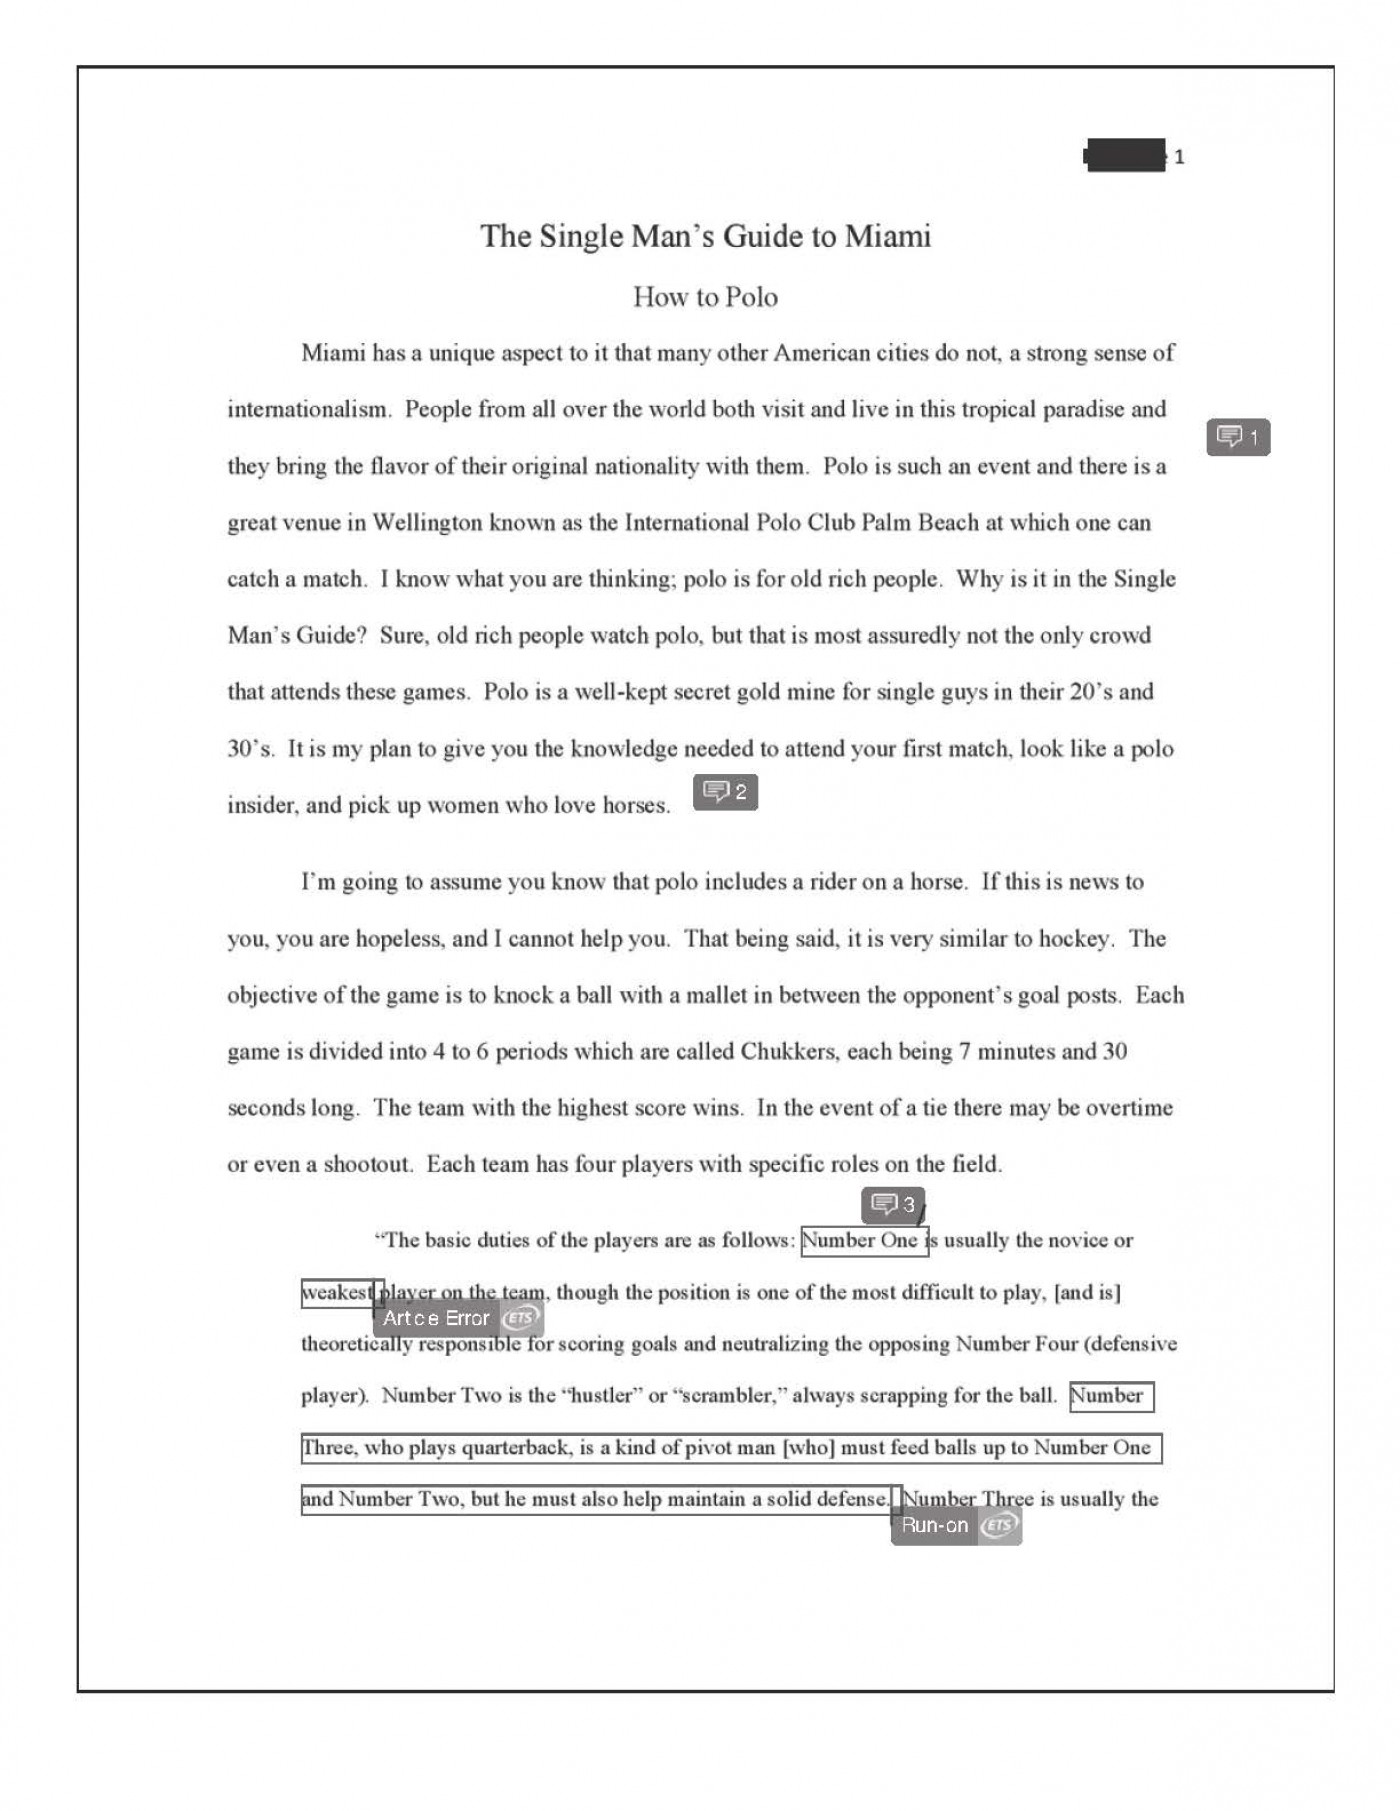 005 Informative Essay Topics Essays Sample Funny Argumentative For Middle School Final How To Polo Redacted P College Students Hilarious Good Remarkable Expository 5th Grade Paper Prompts 1400